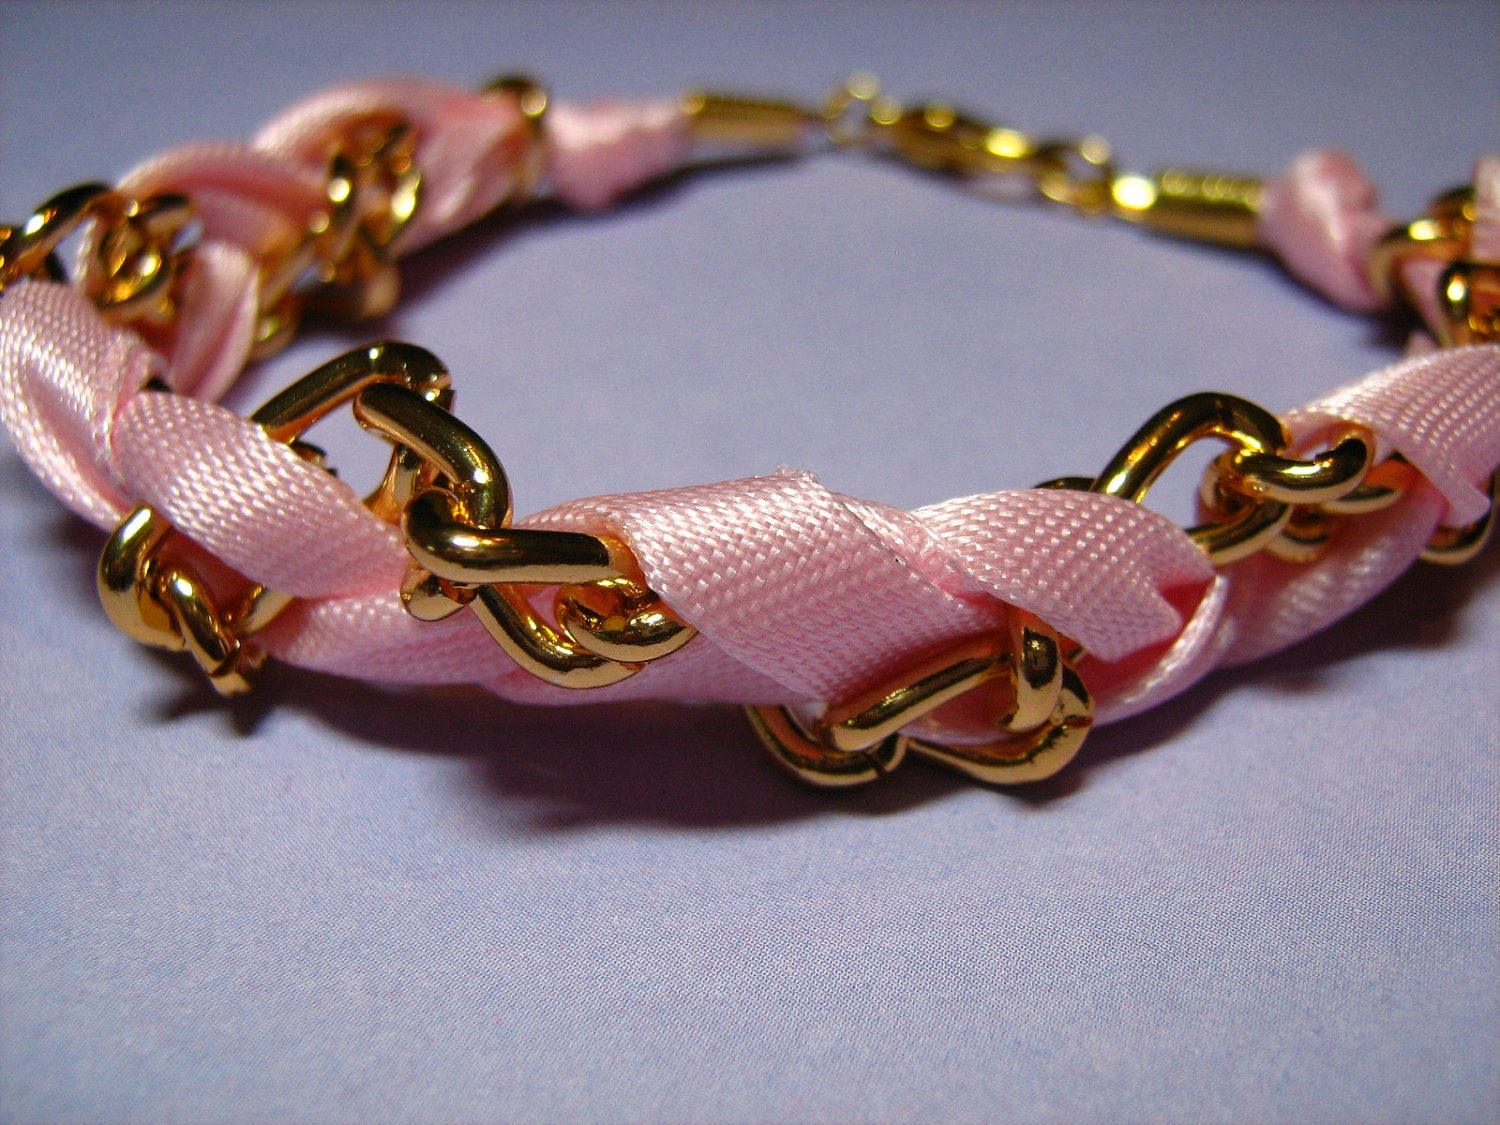 Braided Pink Satin Ribbon and Goldtone Chain Bracelet